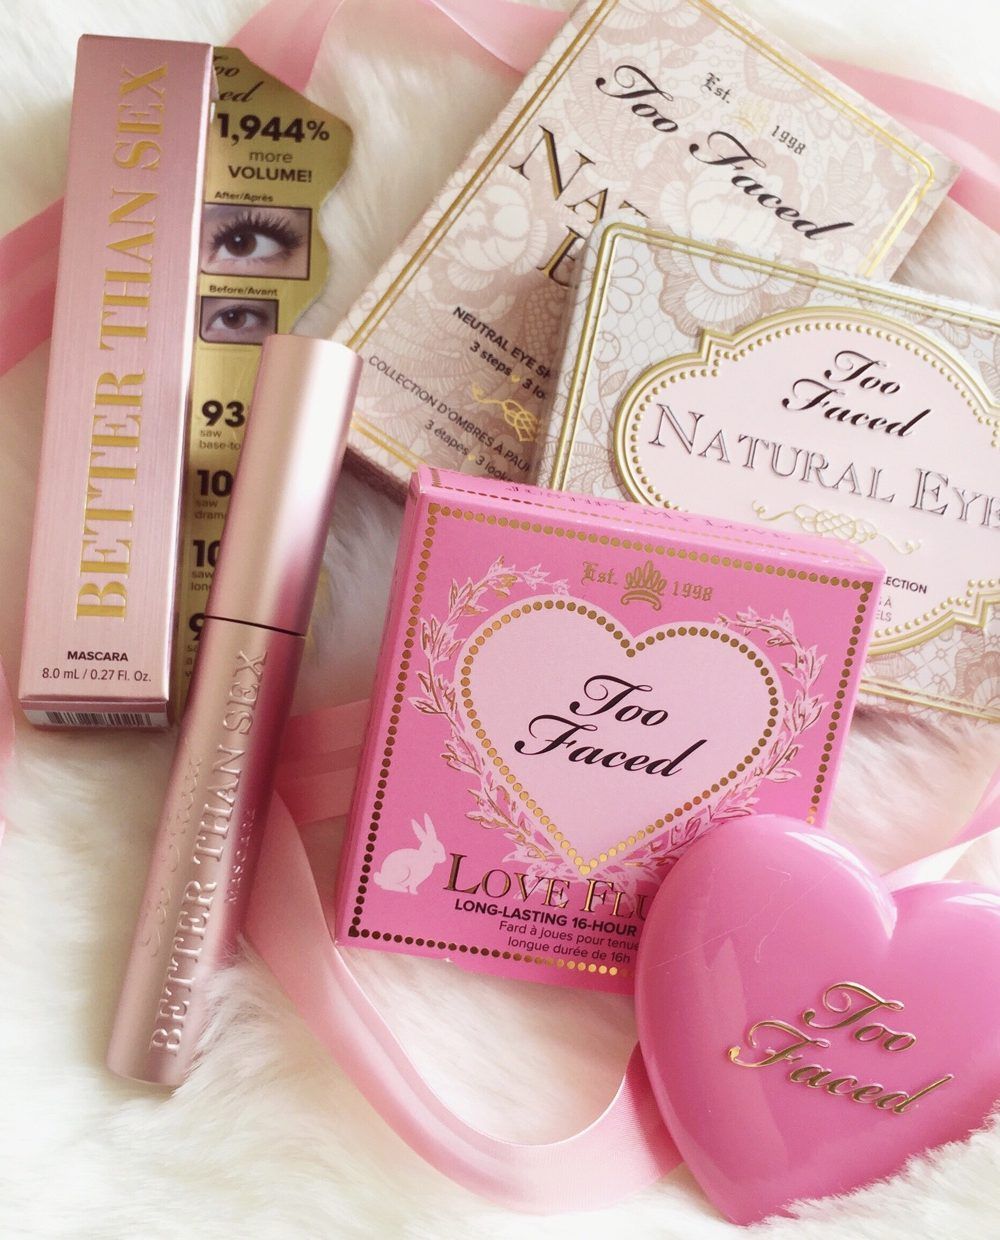 Too Faced Splurge | Natural Eyes Palette, Love Flush Blush & Better Than Sex Mascara